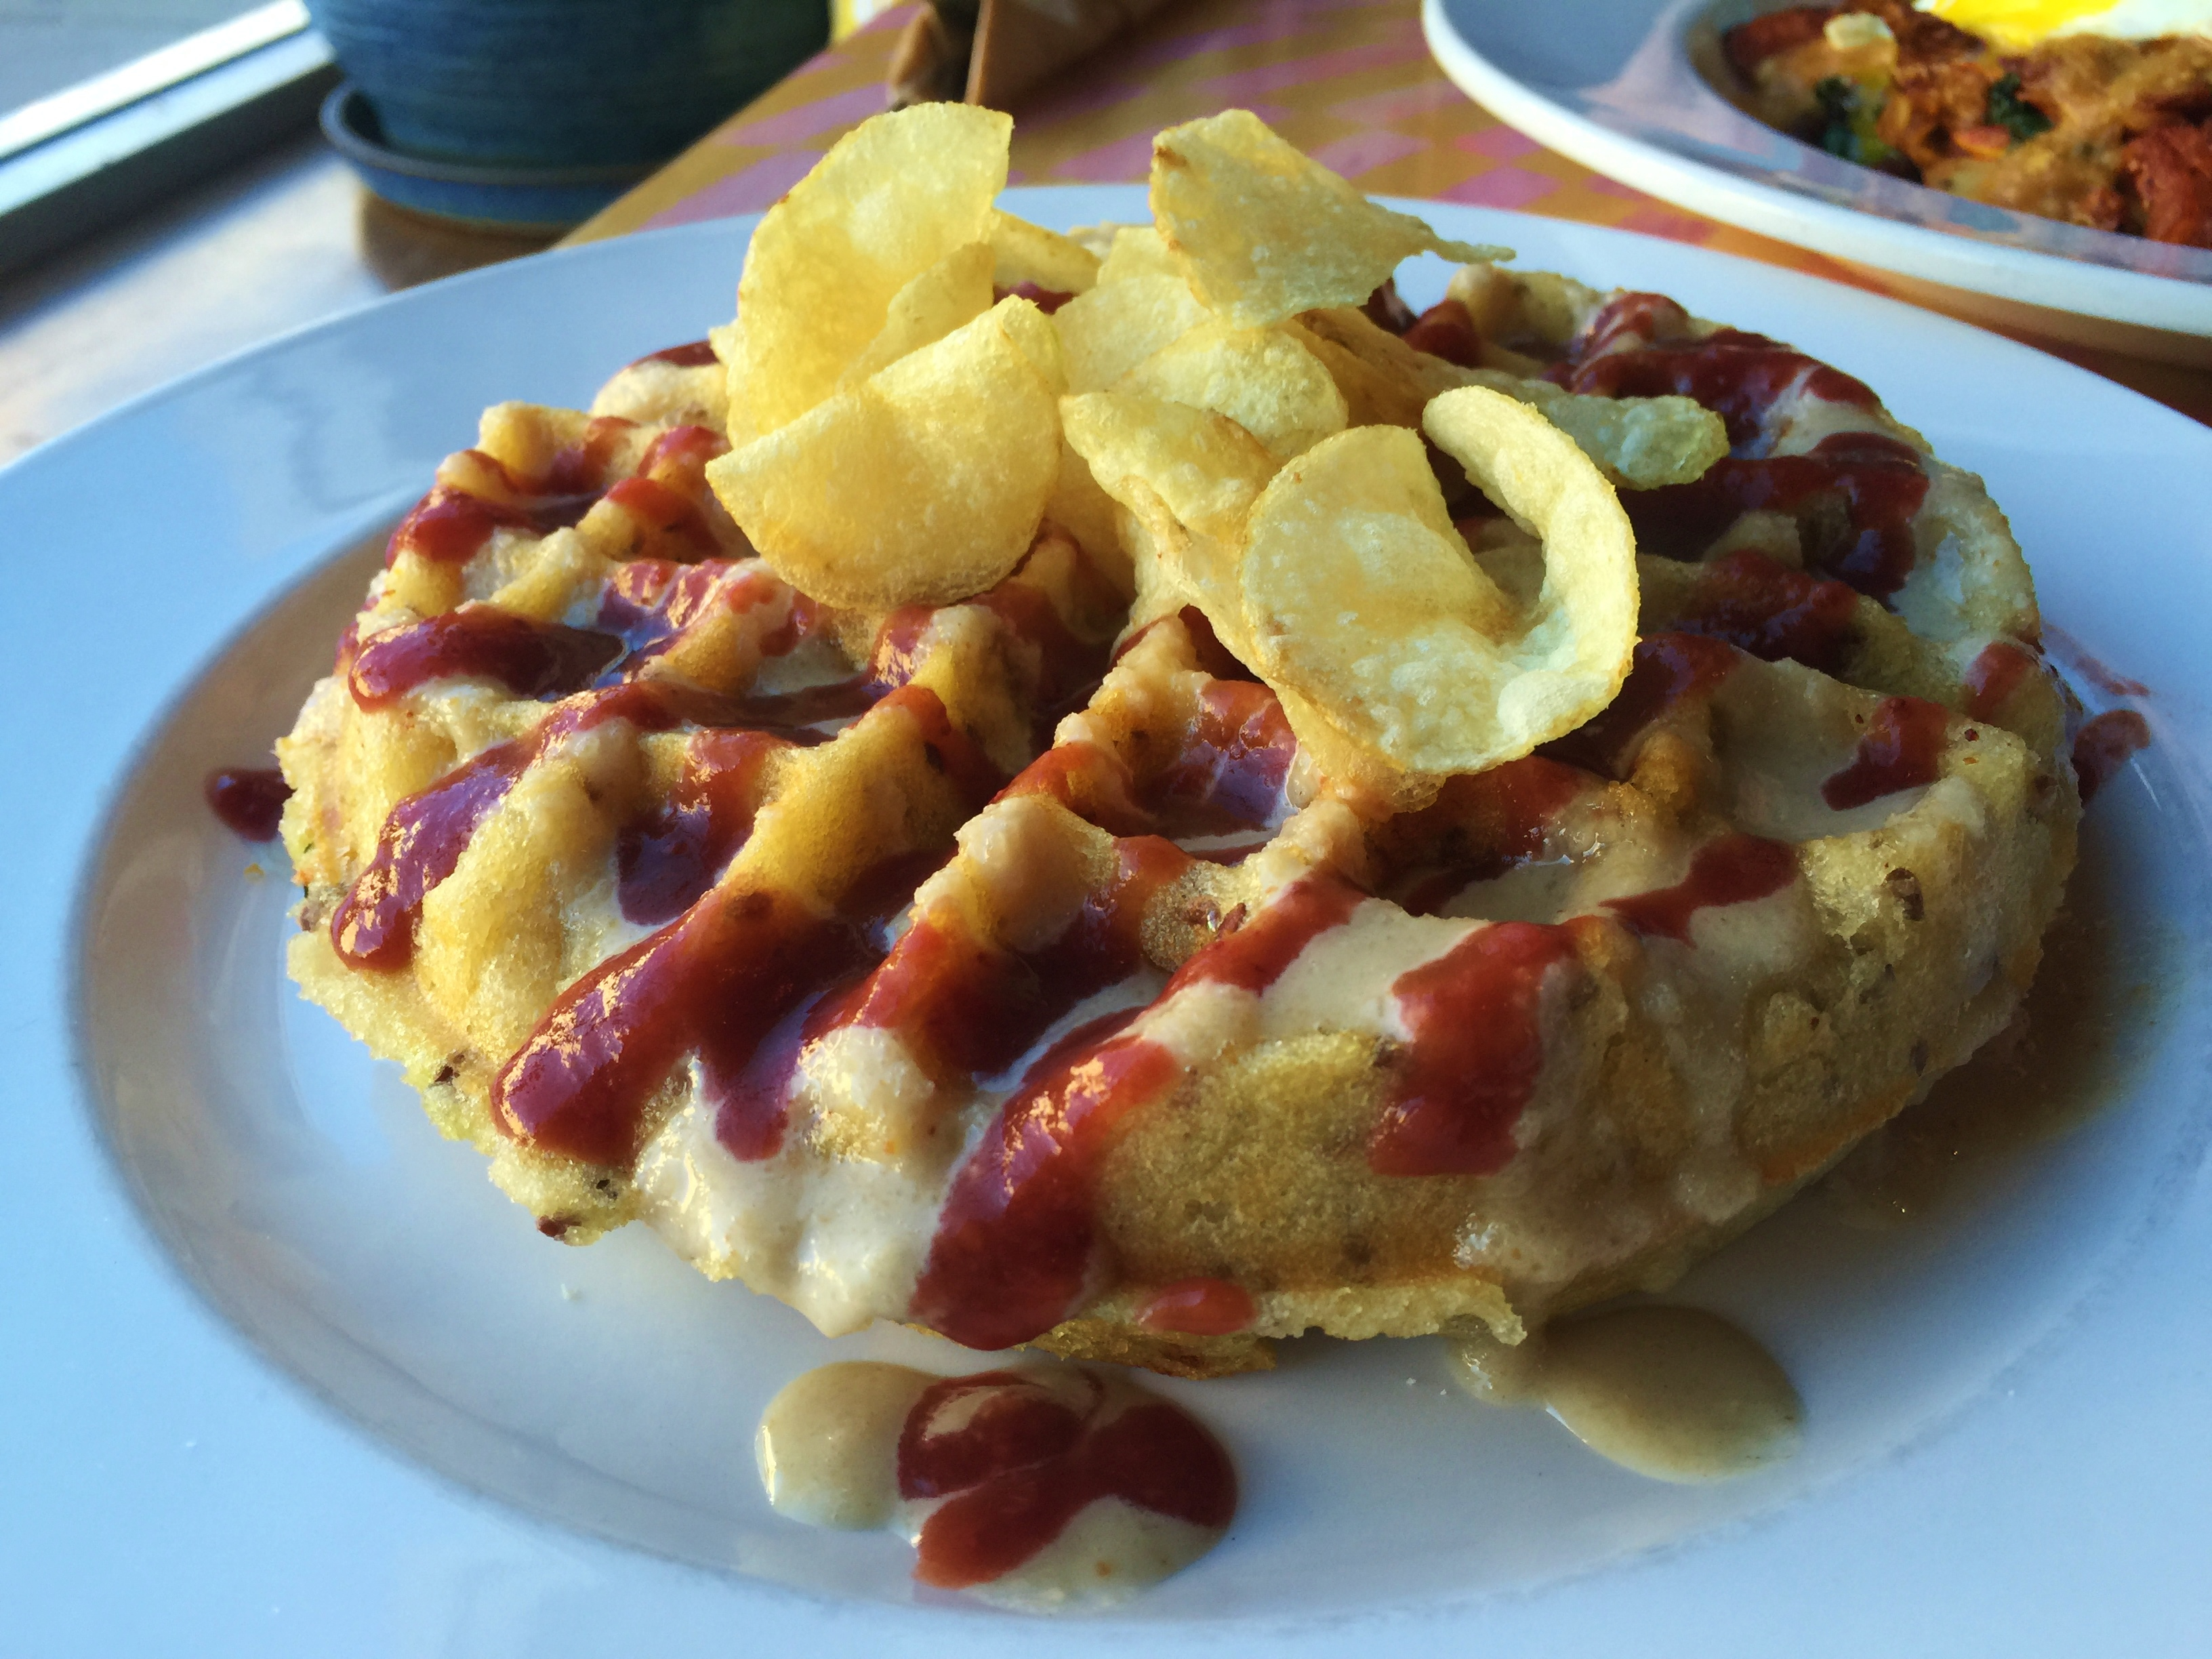 Gluten-Free Waffle, City O' City Denver | In Johnna's Kitchen